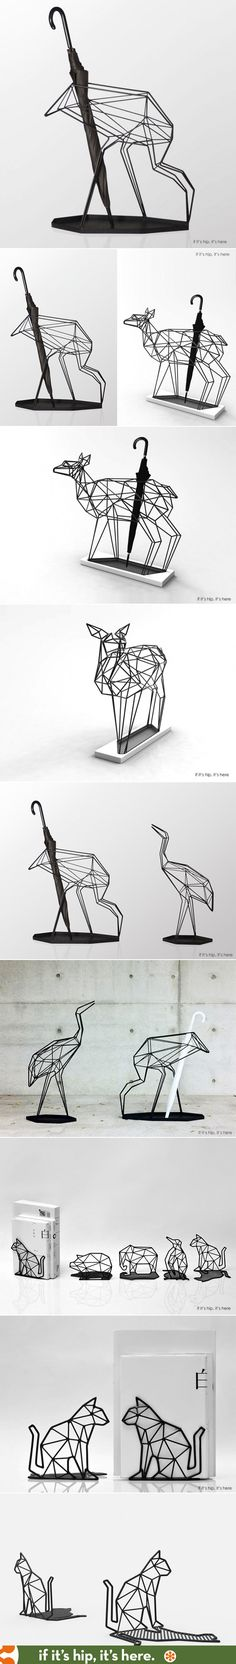 Umbrella stands and bookends shaped like origami animals.